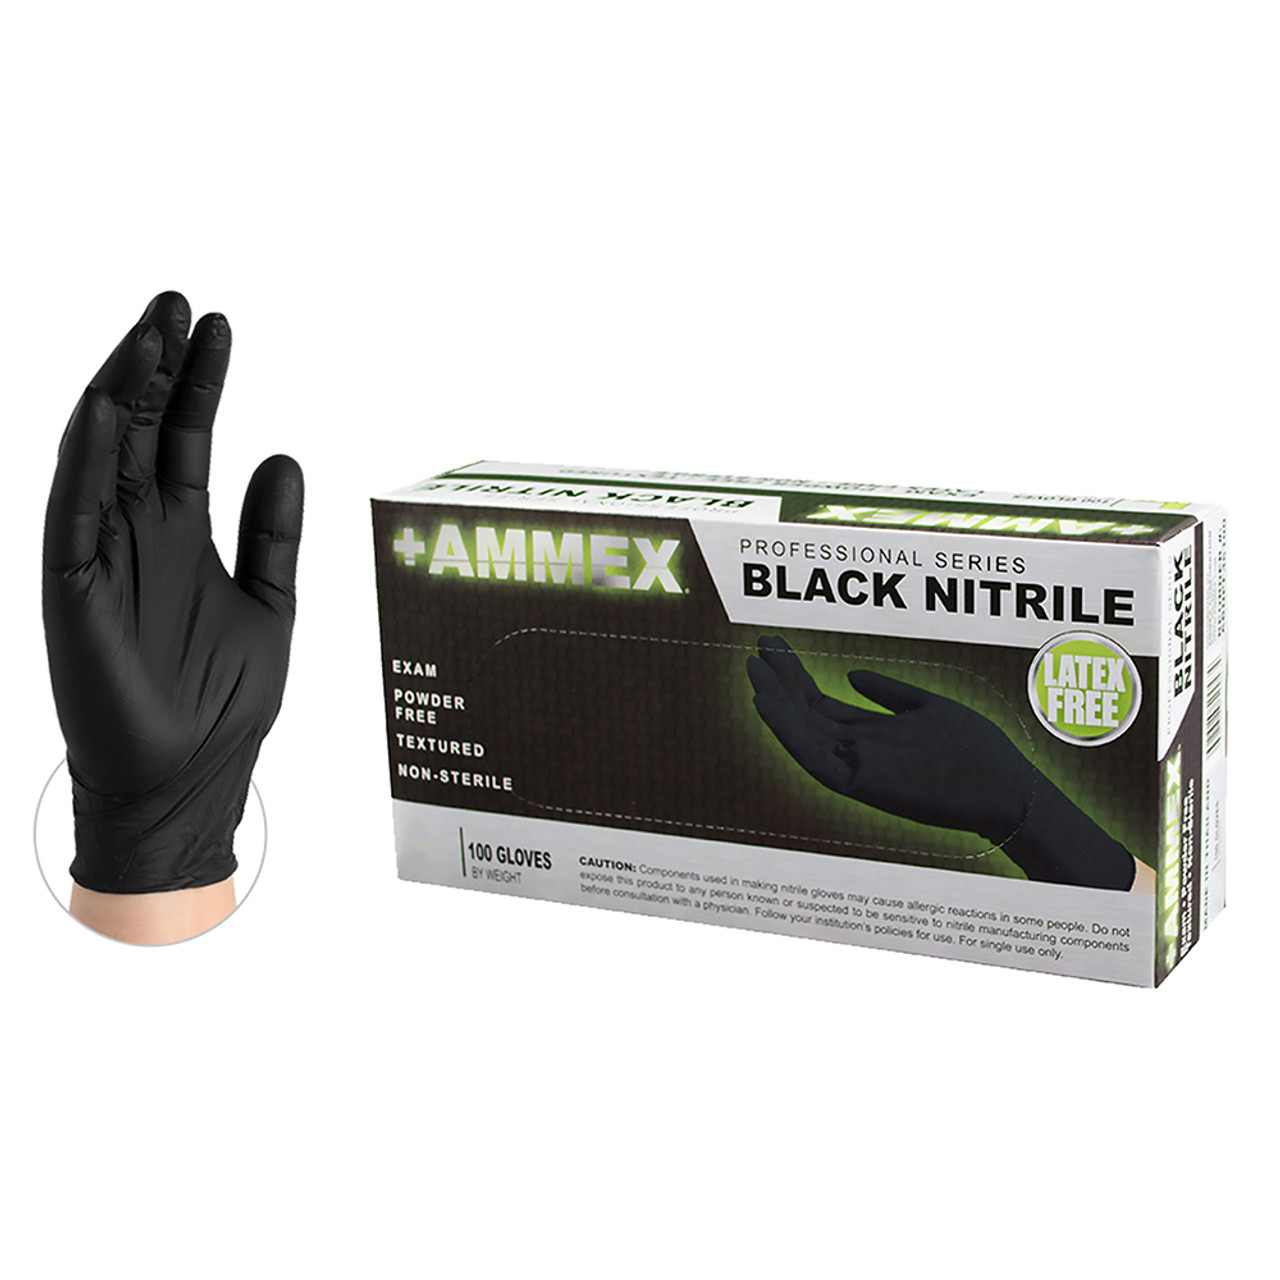 Ammex PF Exam Black Nitrile Gloves- Medium- 100ct/box- ABNPF44100